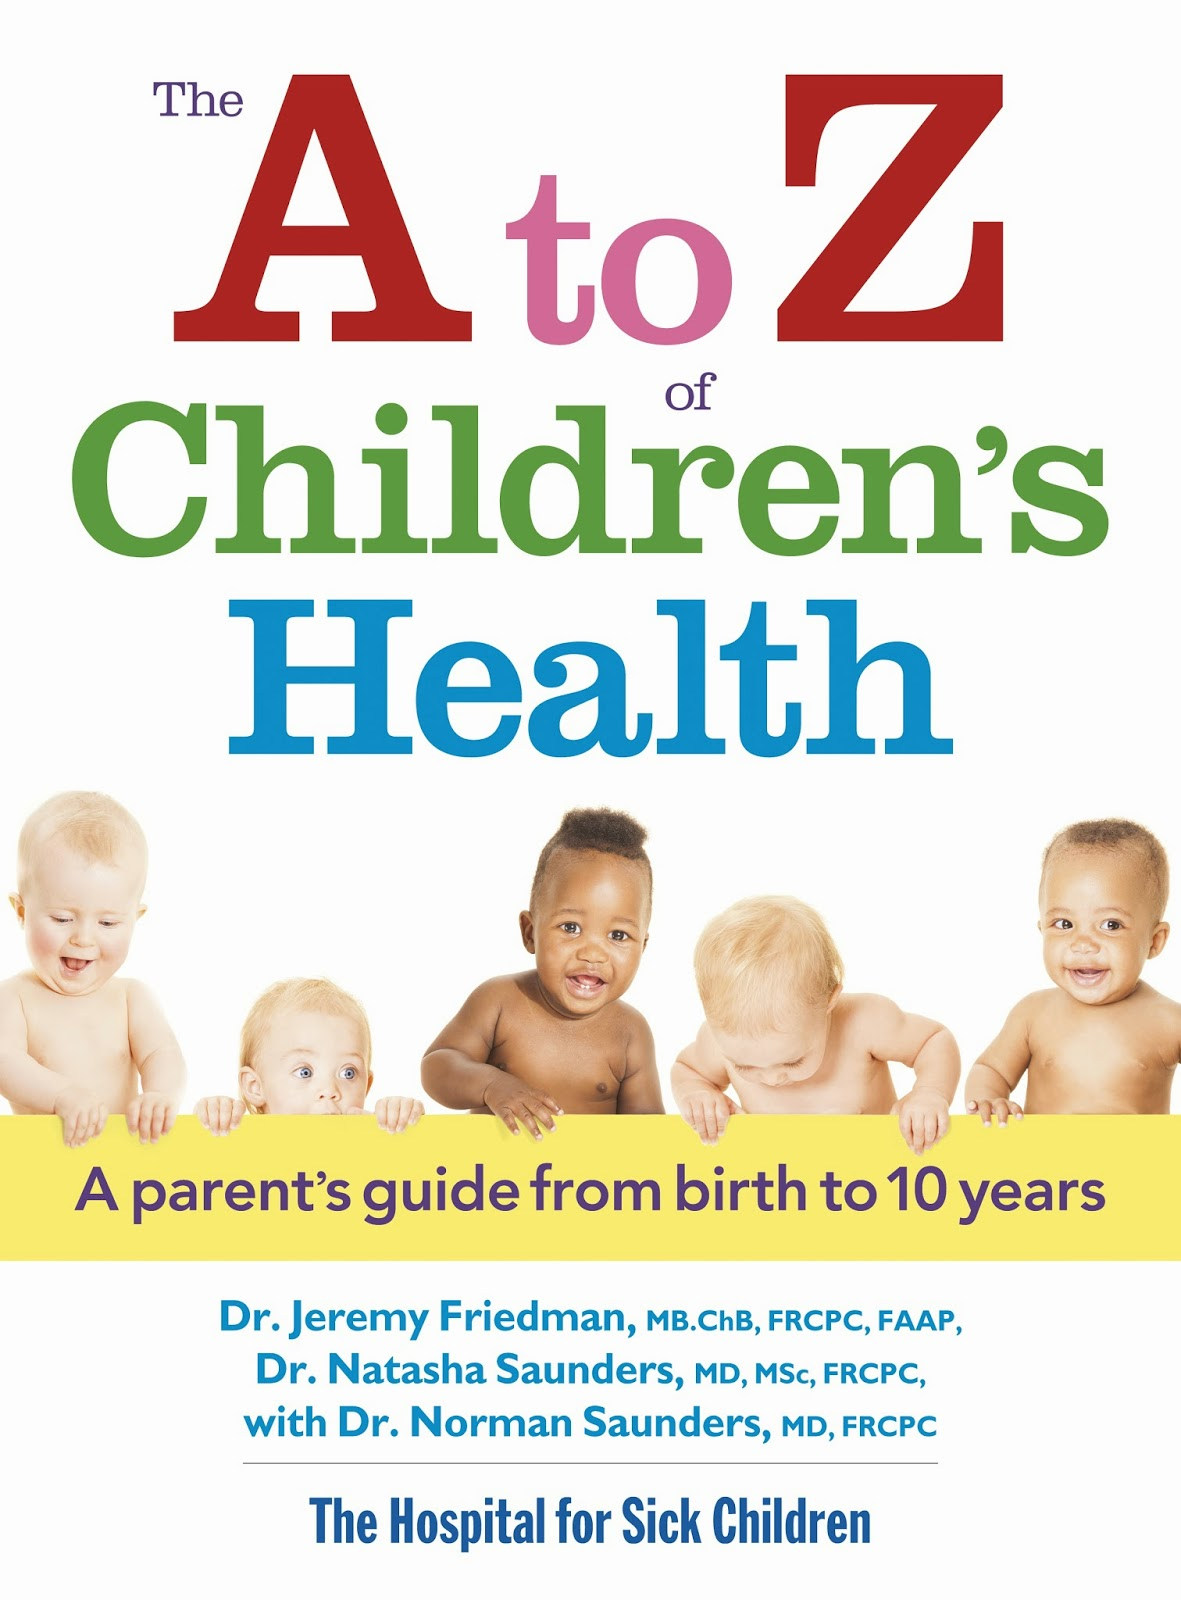 Advice Information About Childrens Health